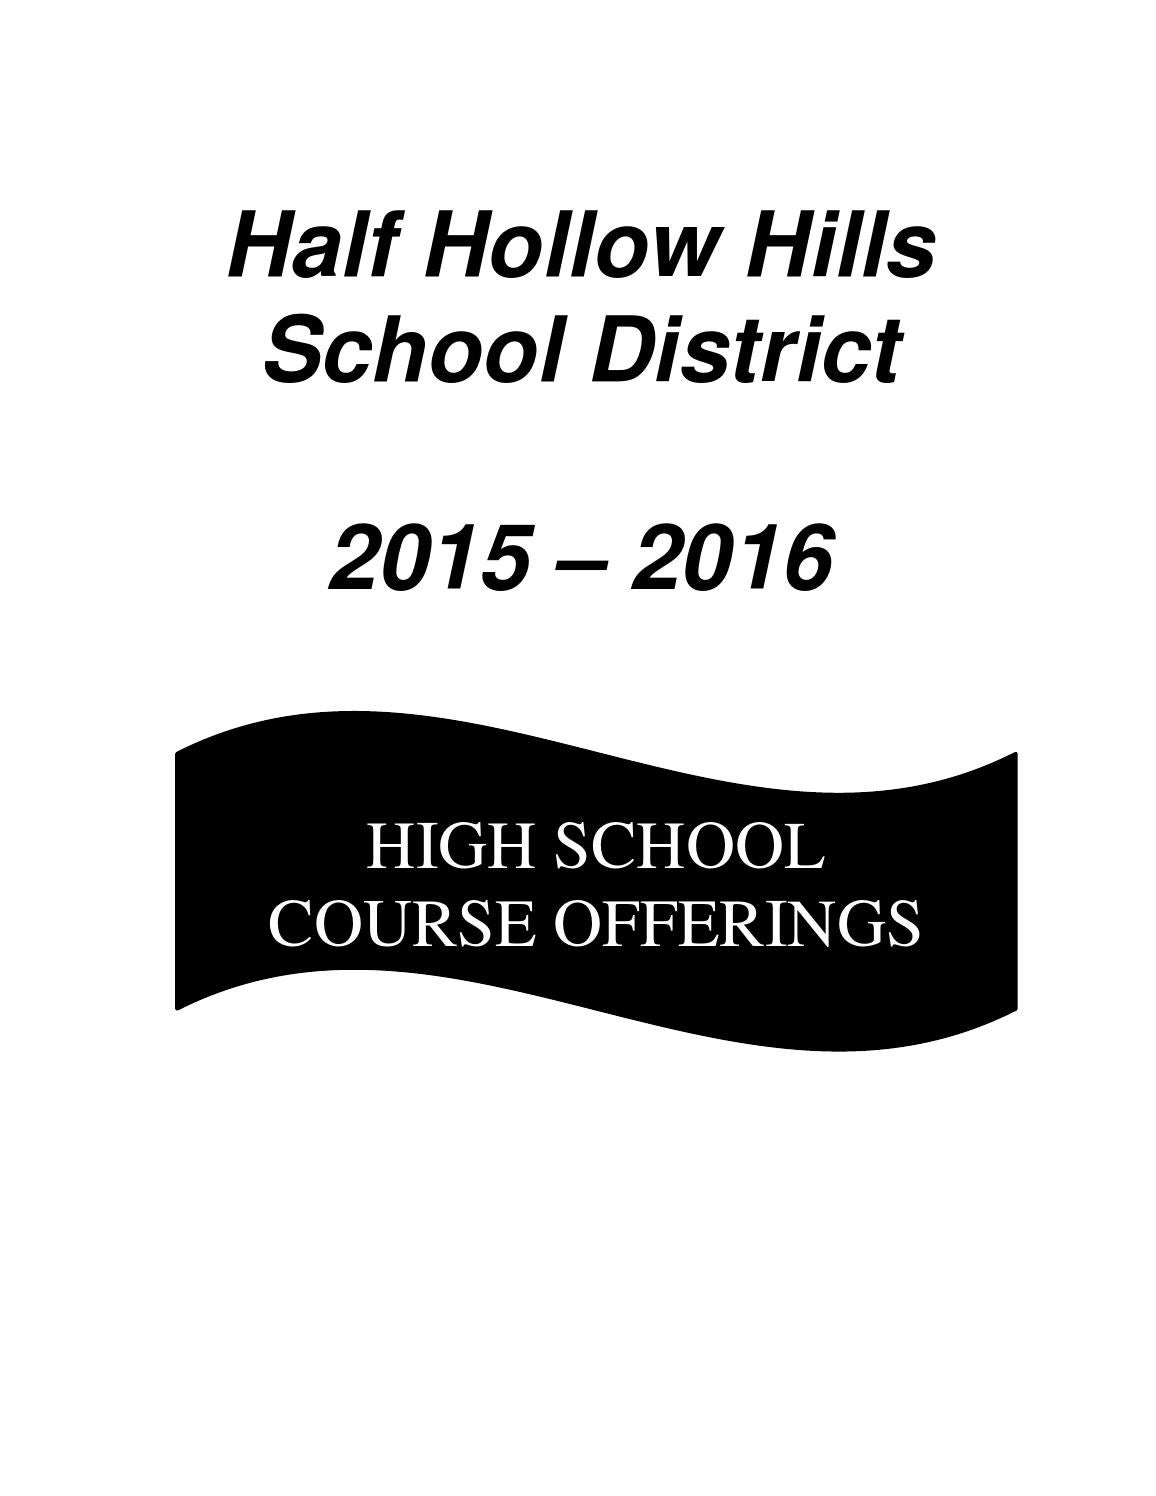 Final 2015 2016 course offering book 3 by Half Hollow